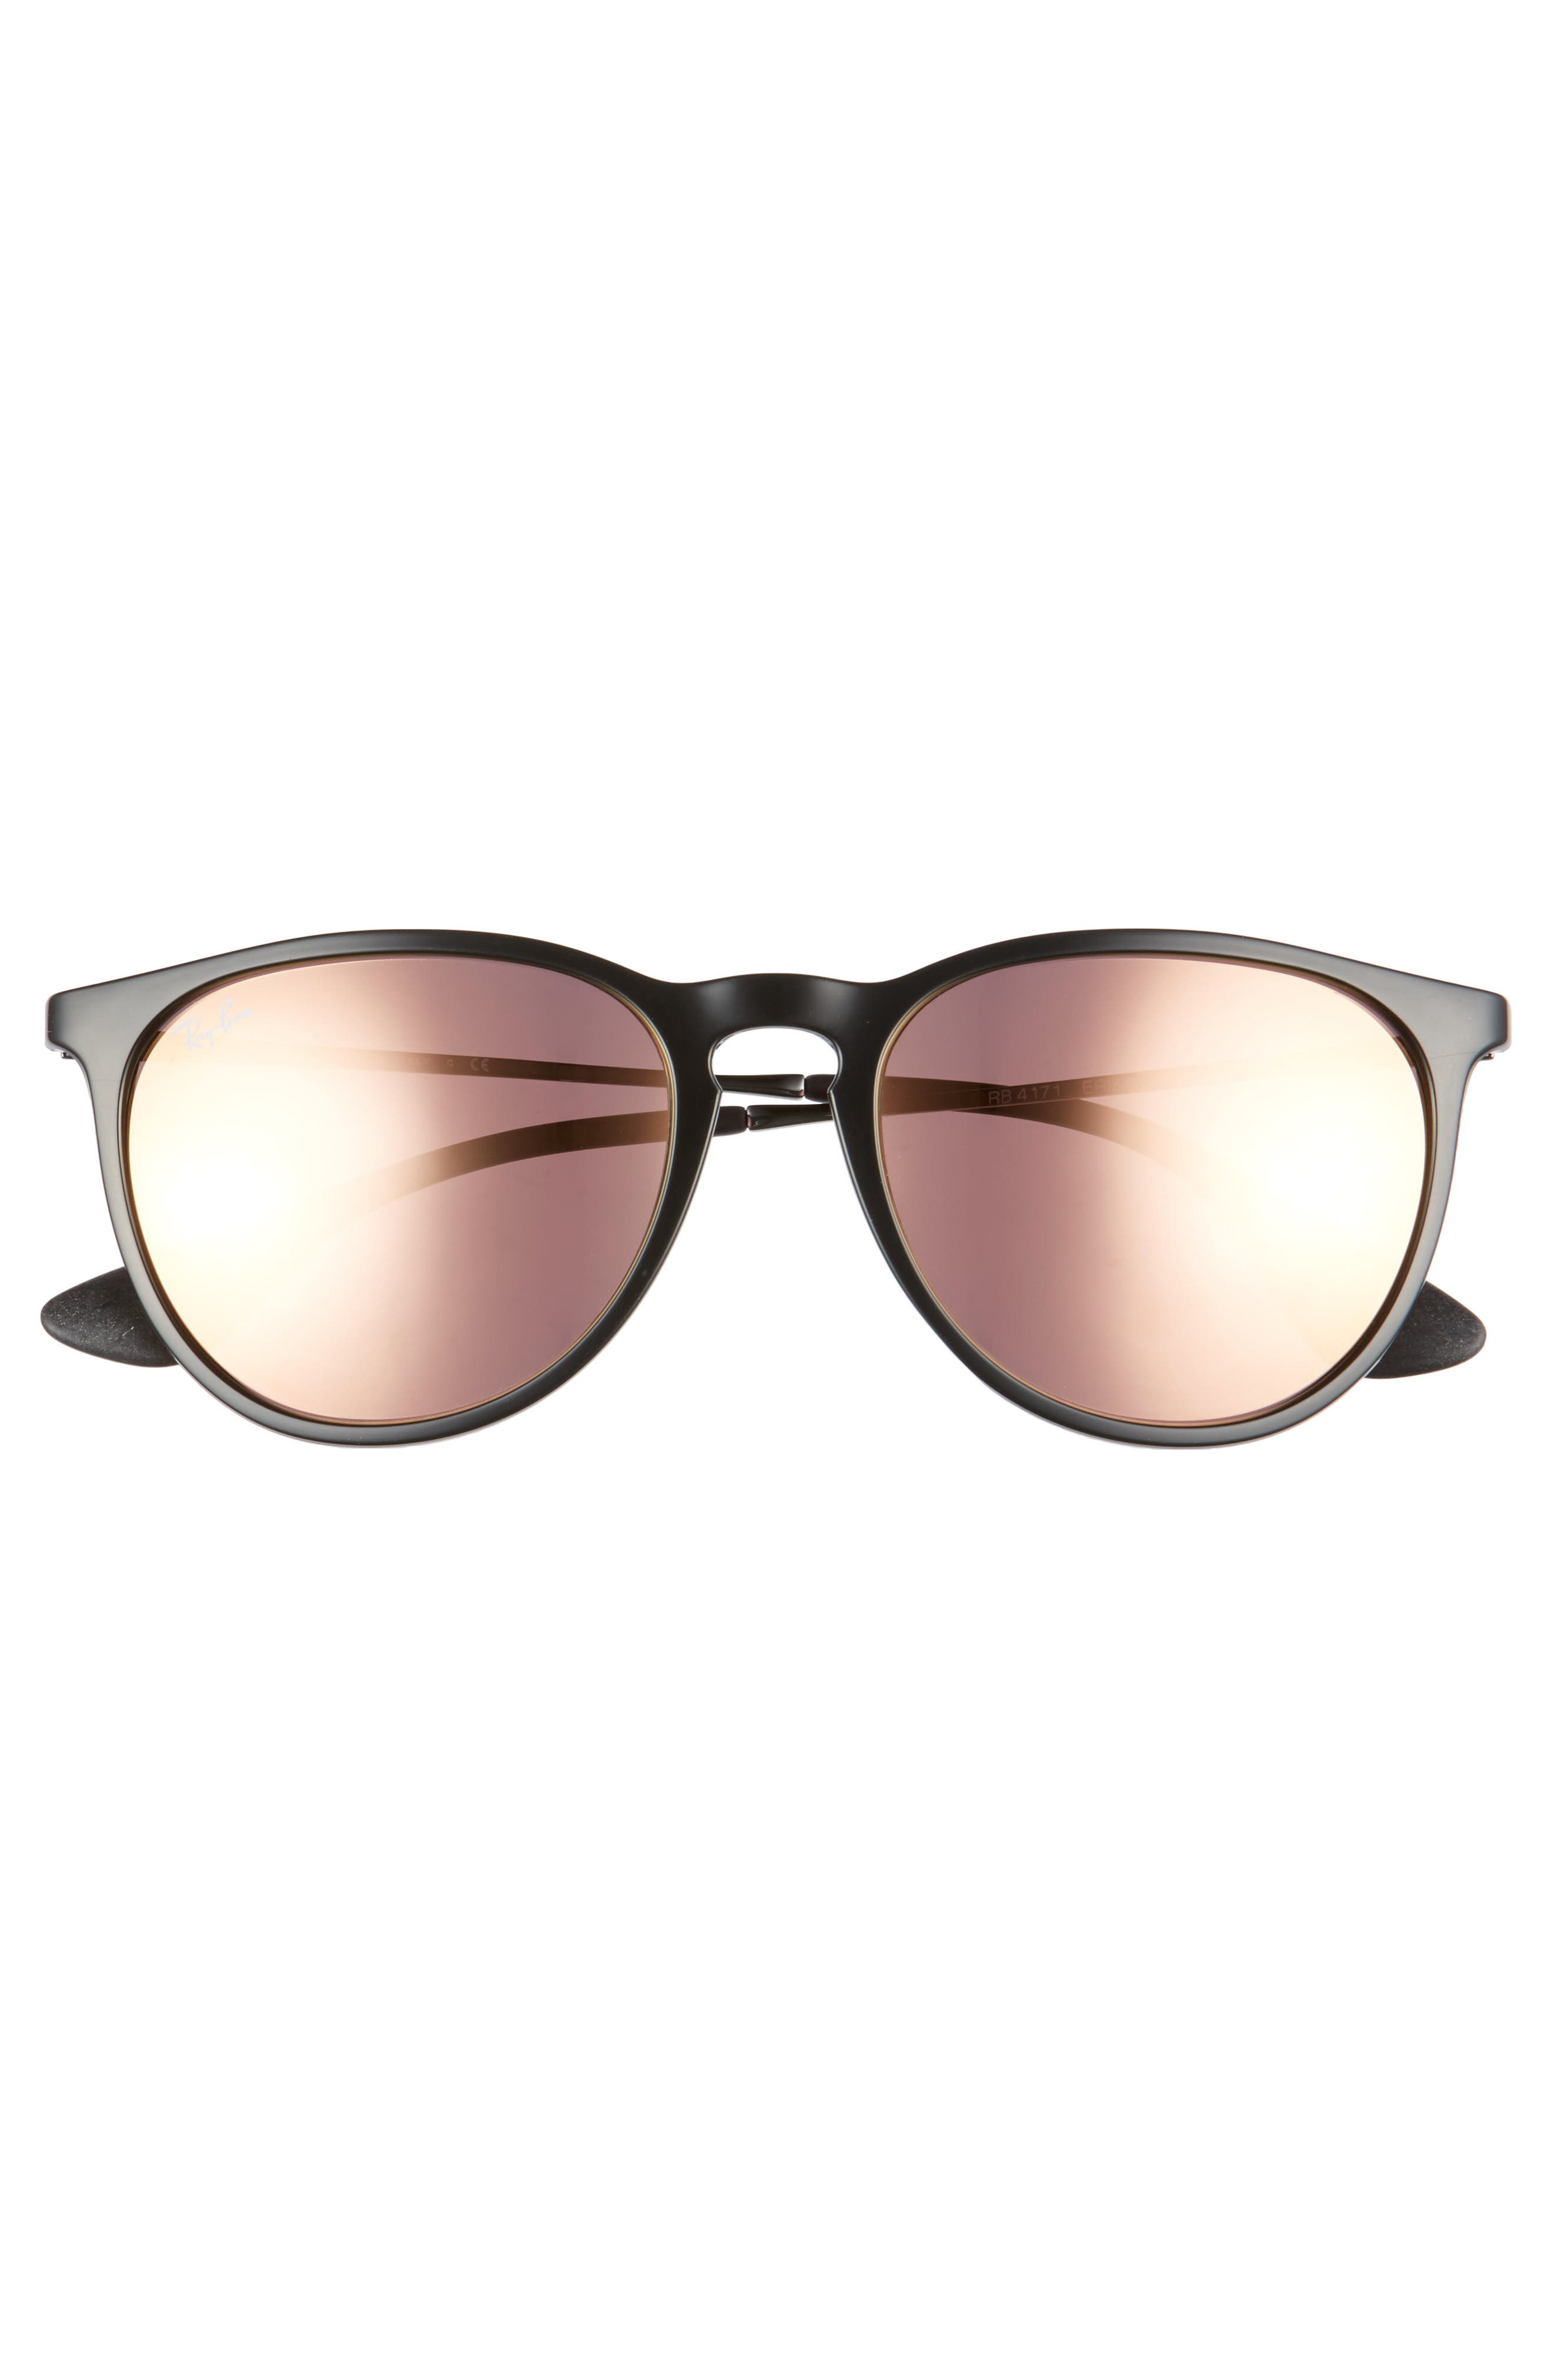 Erika 54mm Mirrored Sunglasses,                             Alternate thumbnail 6, color,